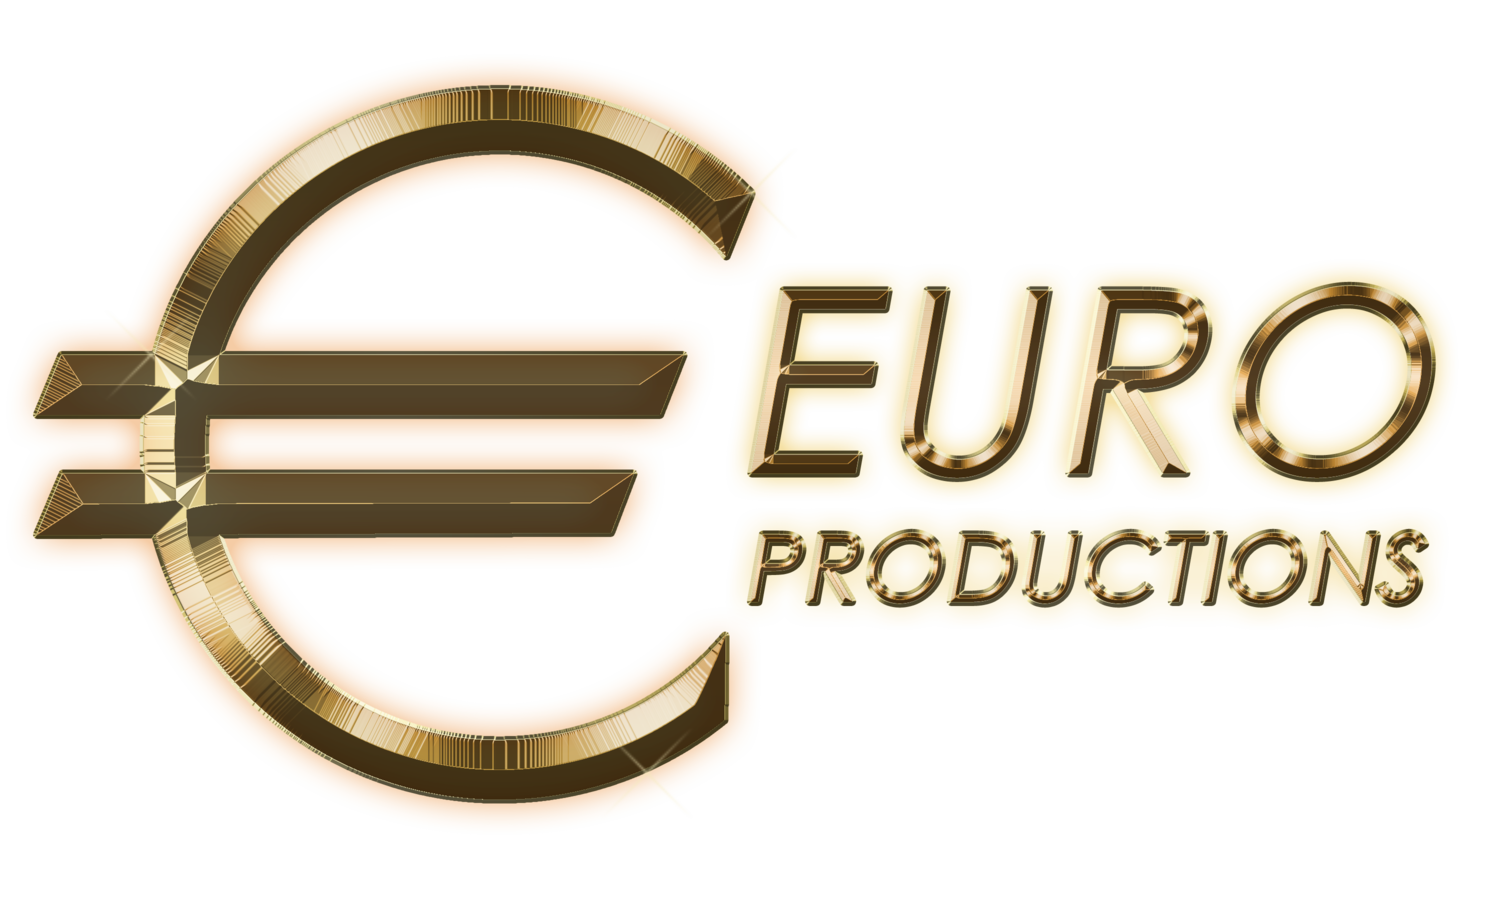 euro productions